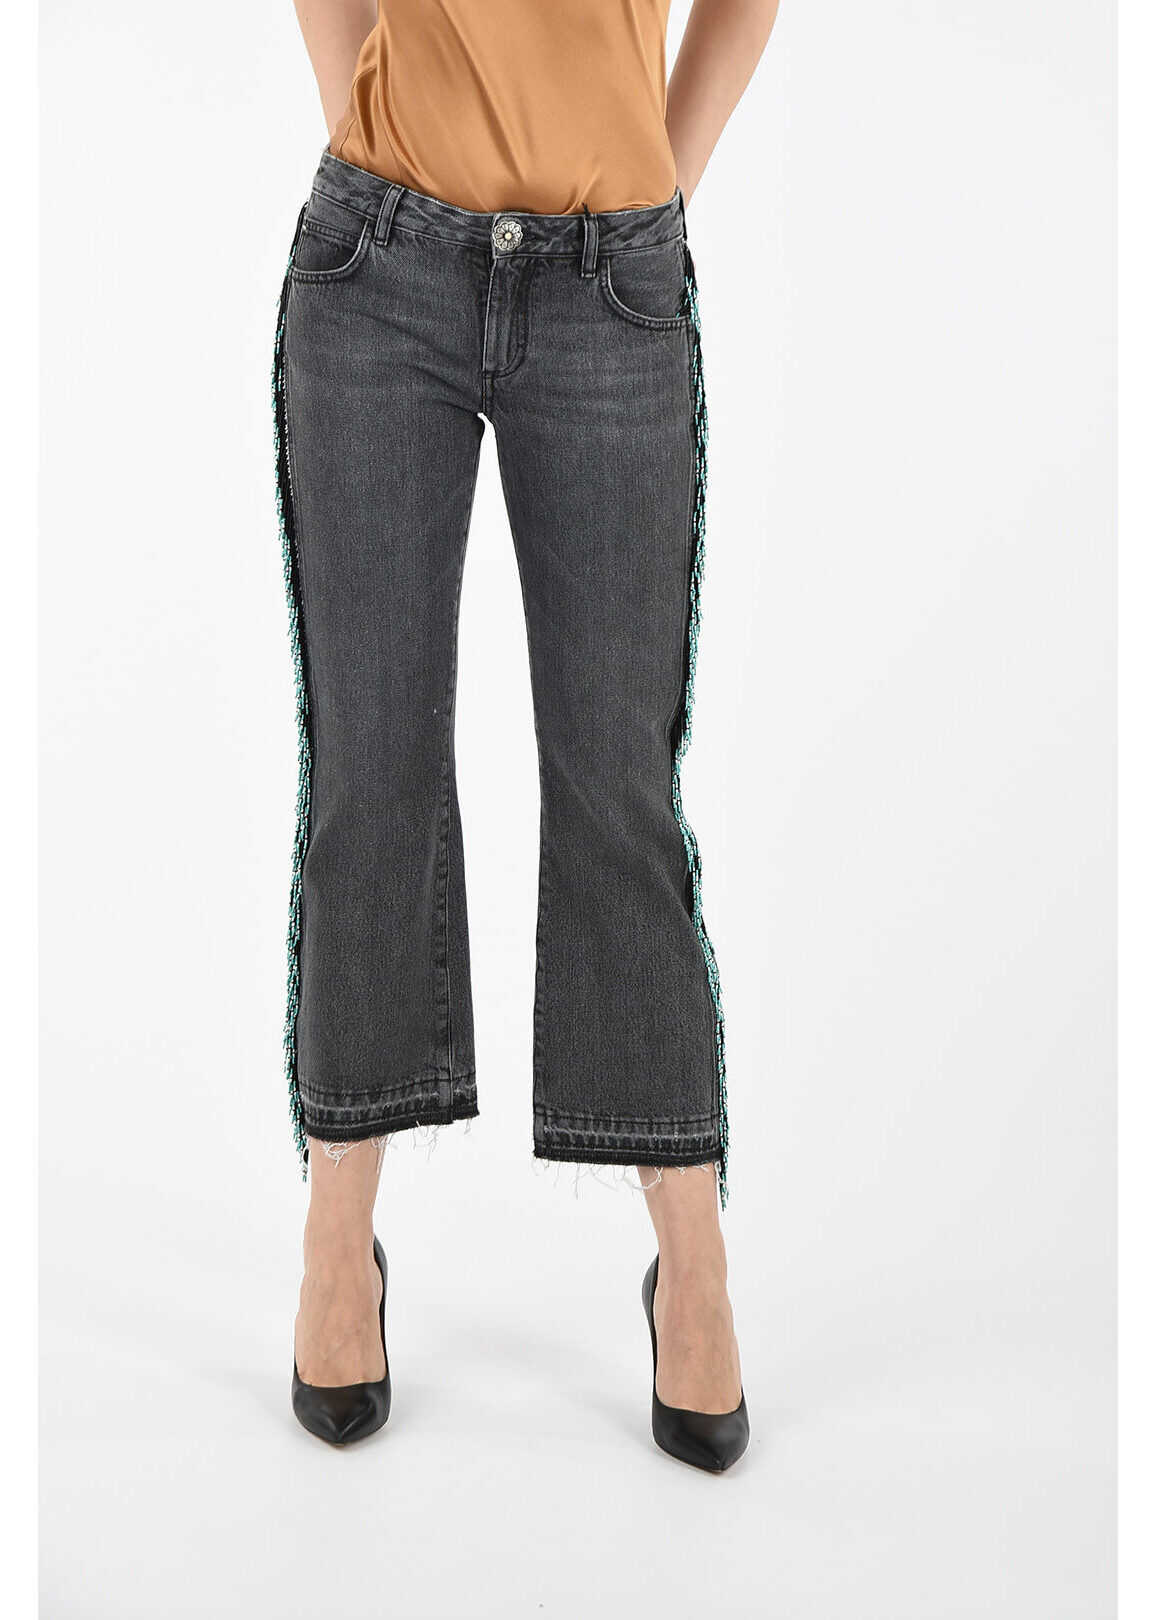 ALANUI Tapered Jeans with Beaded Embroideries 22 cm GRAY